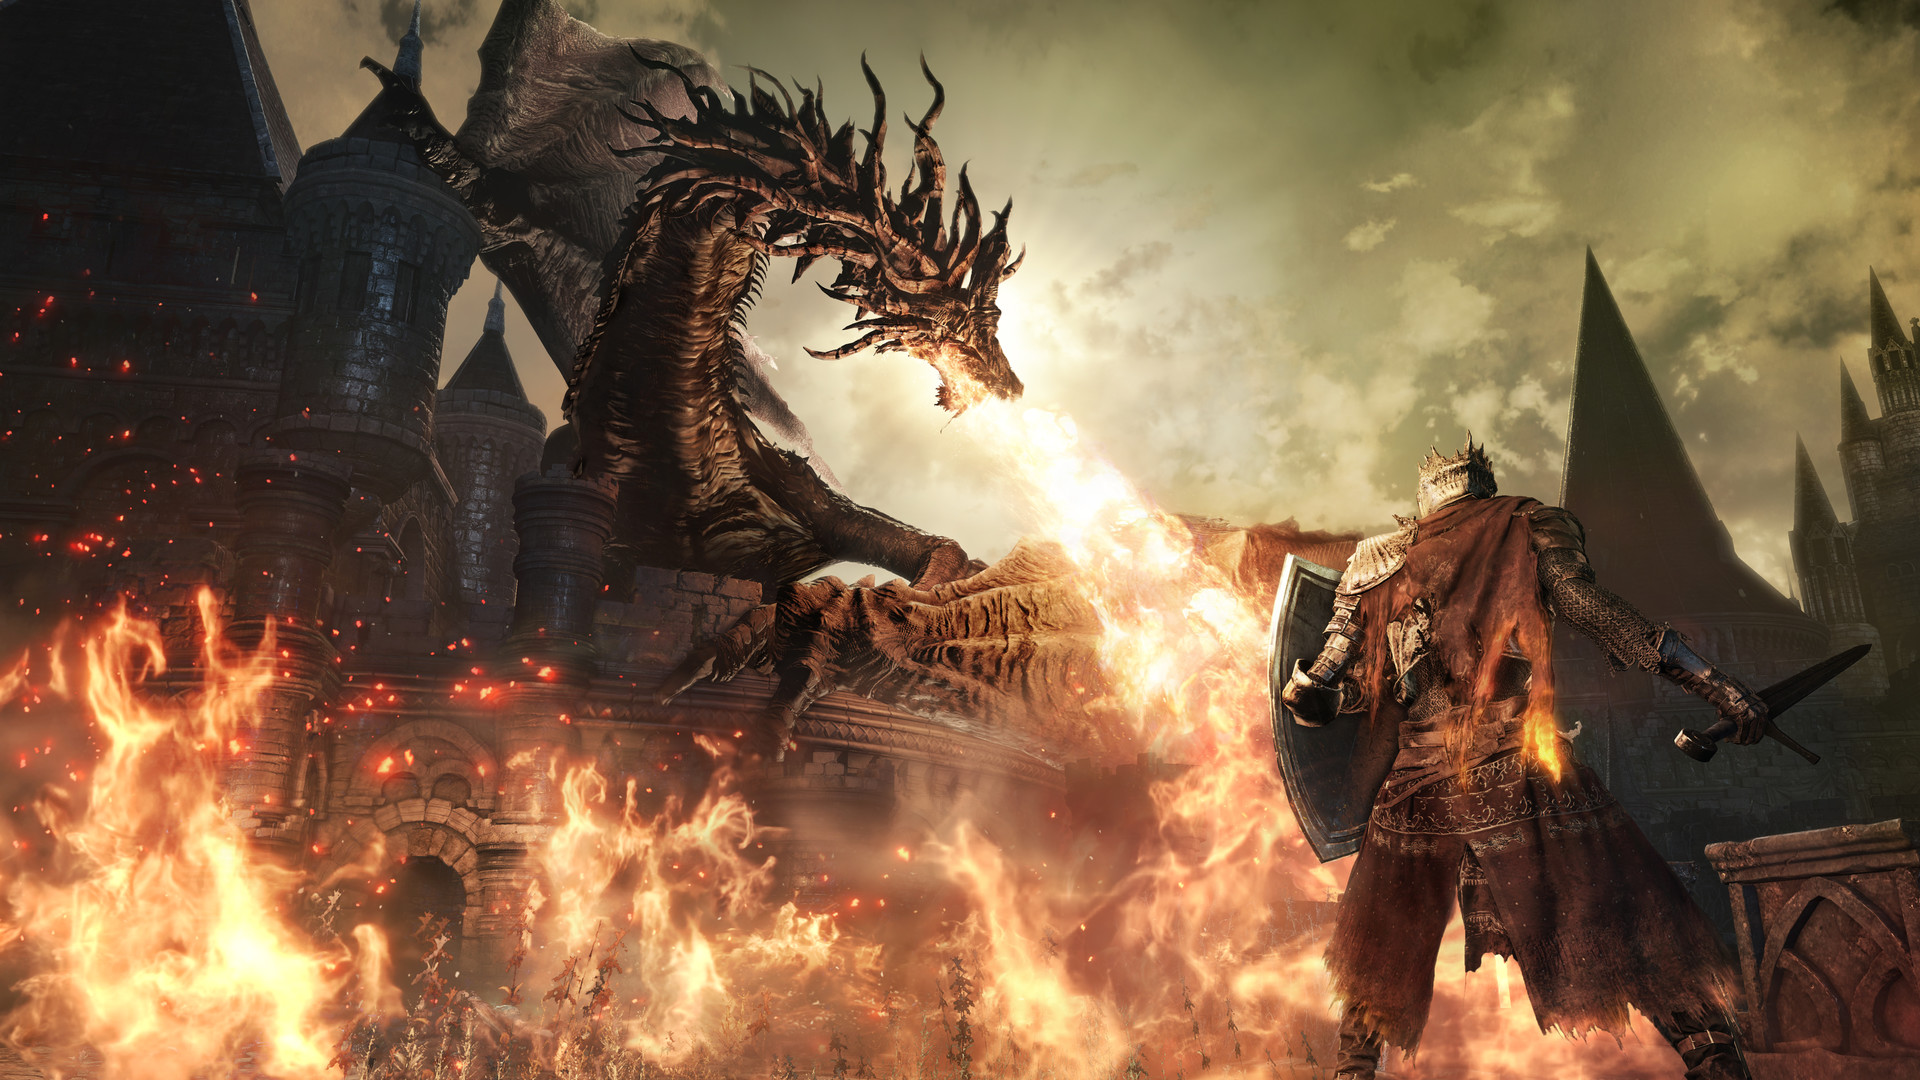 Find the best gaming PC for DS3